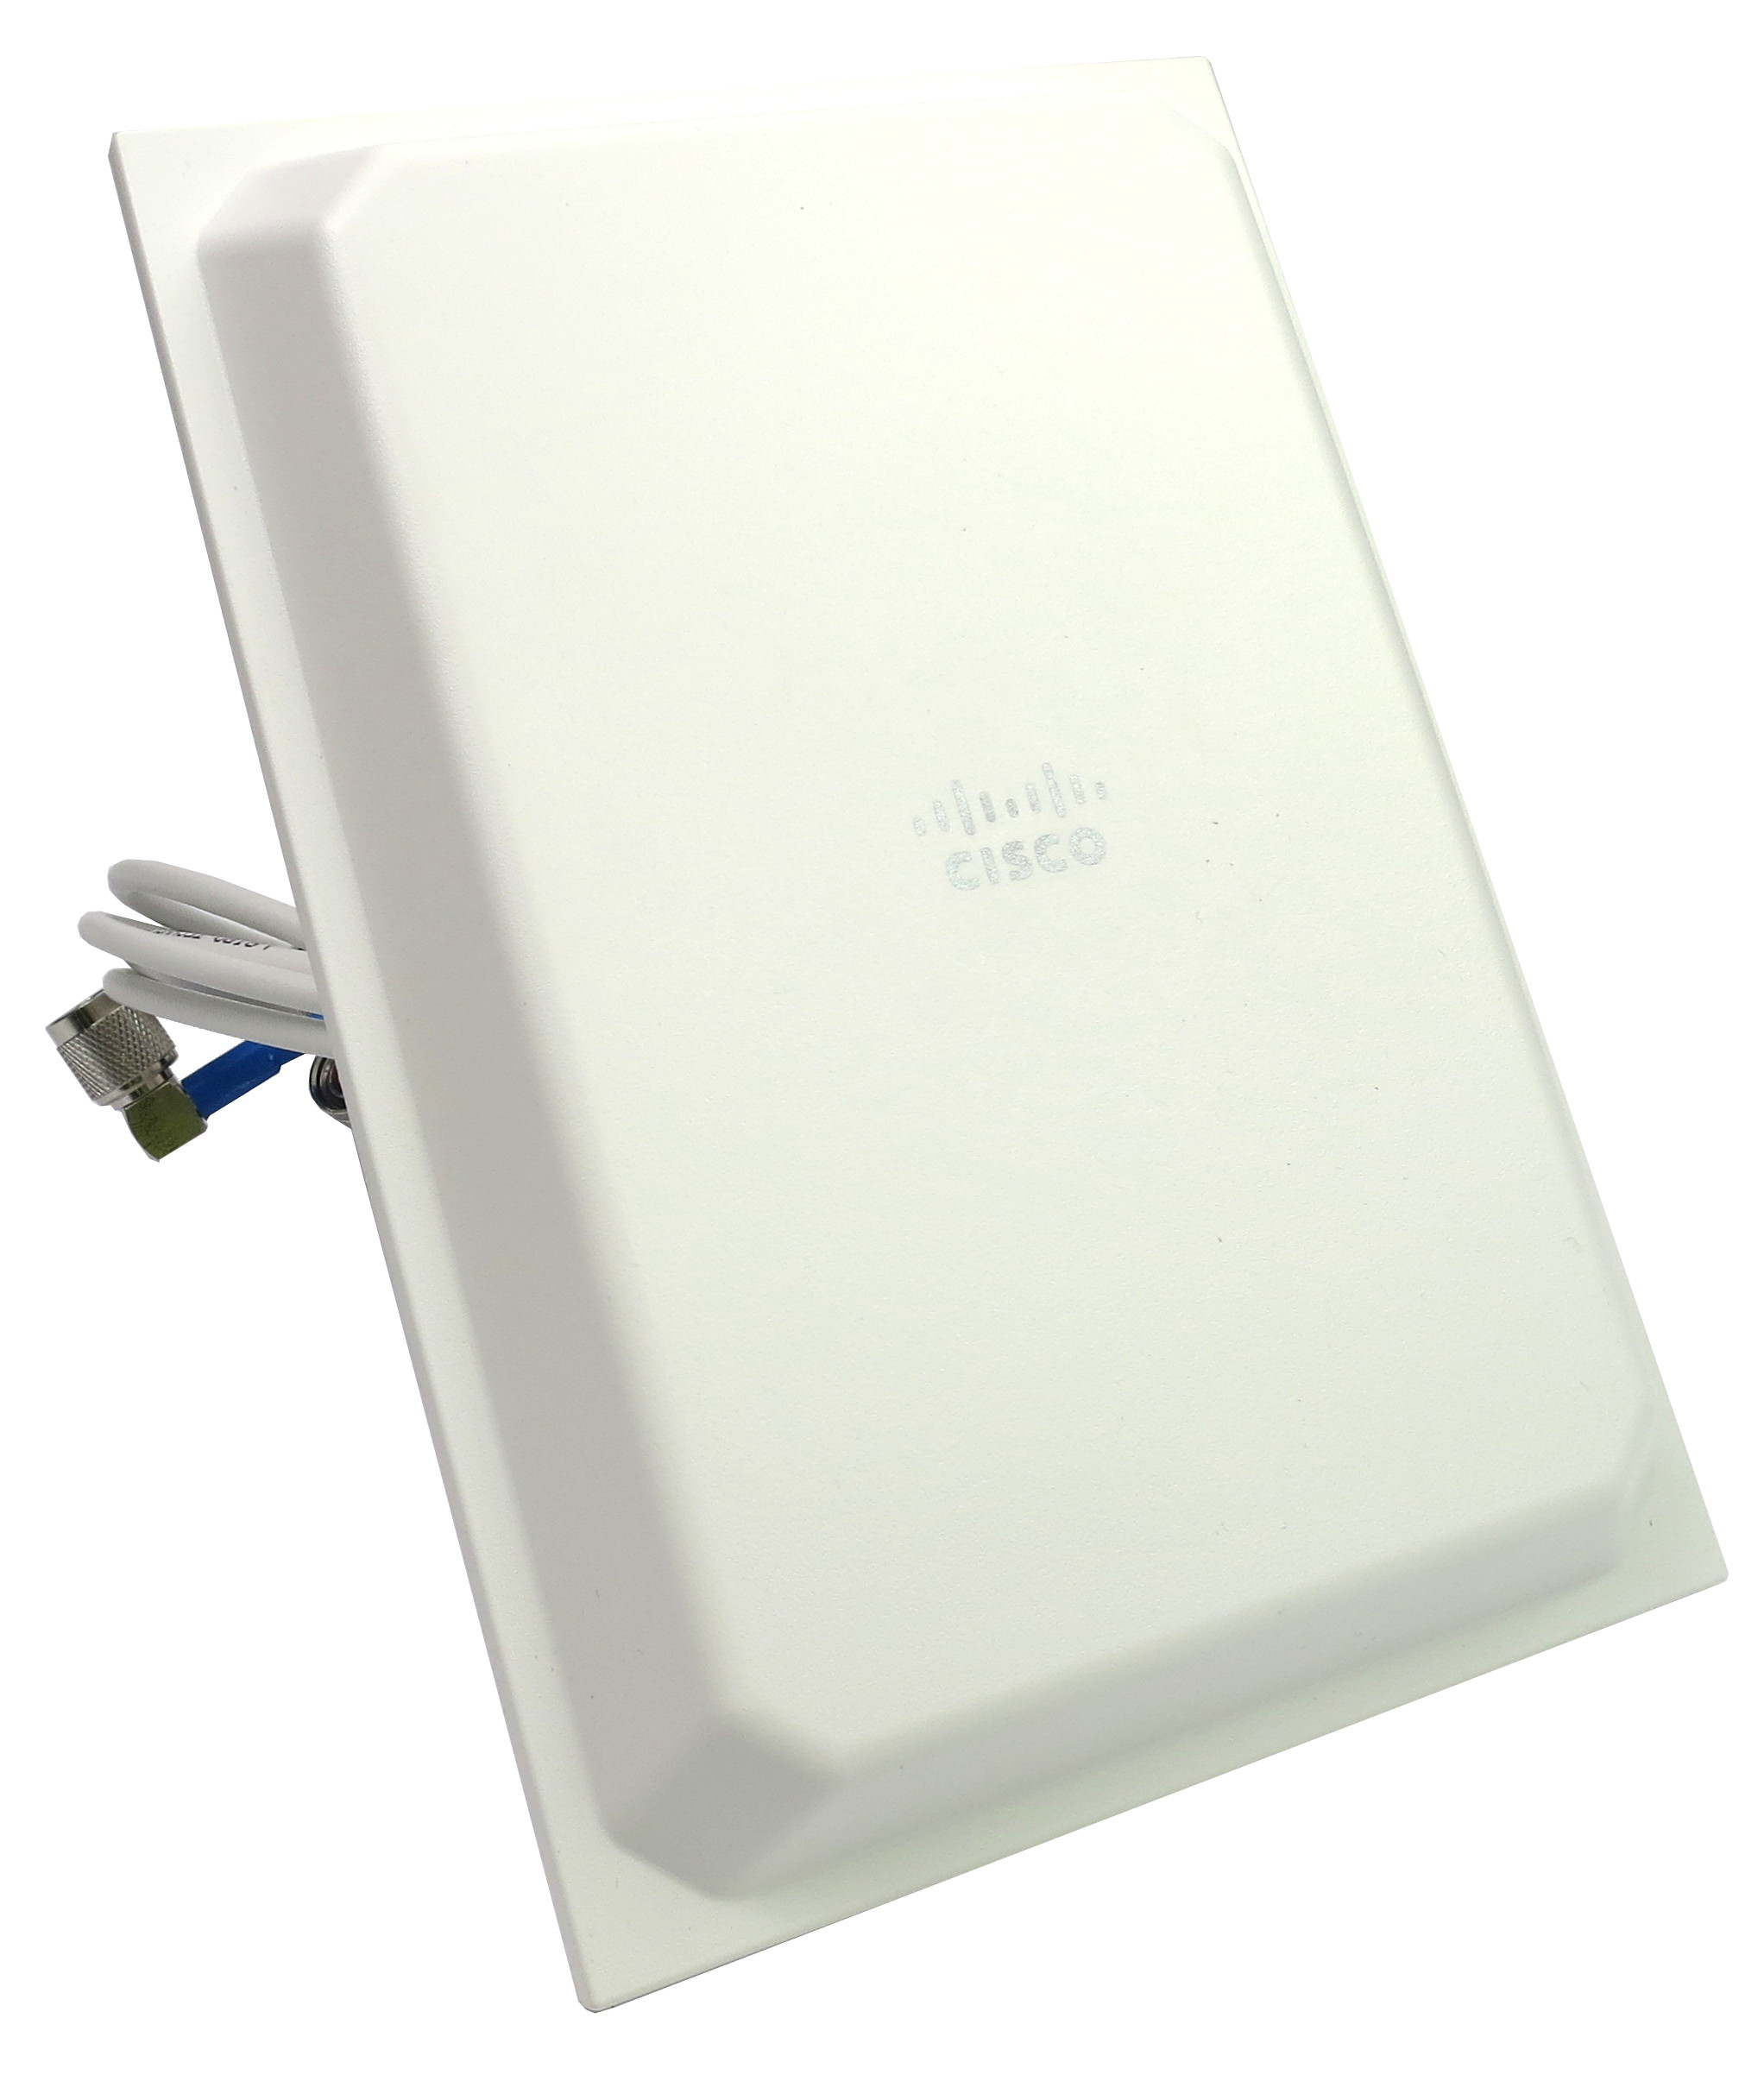 Cisco AIR-ANT2451V-R Aironet Four-Element Dual-Band Omnidirectional Antenna